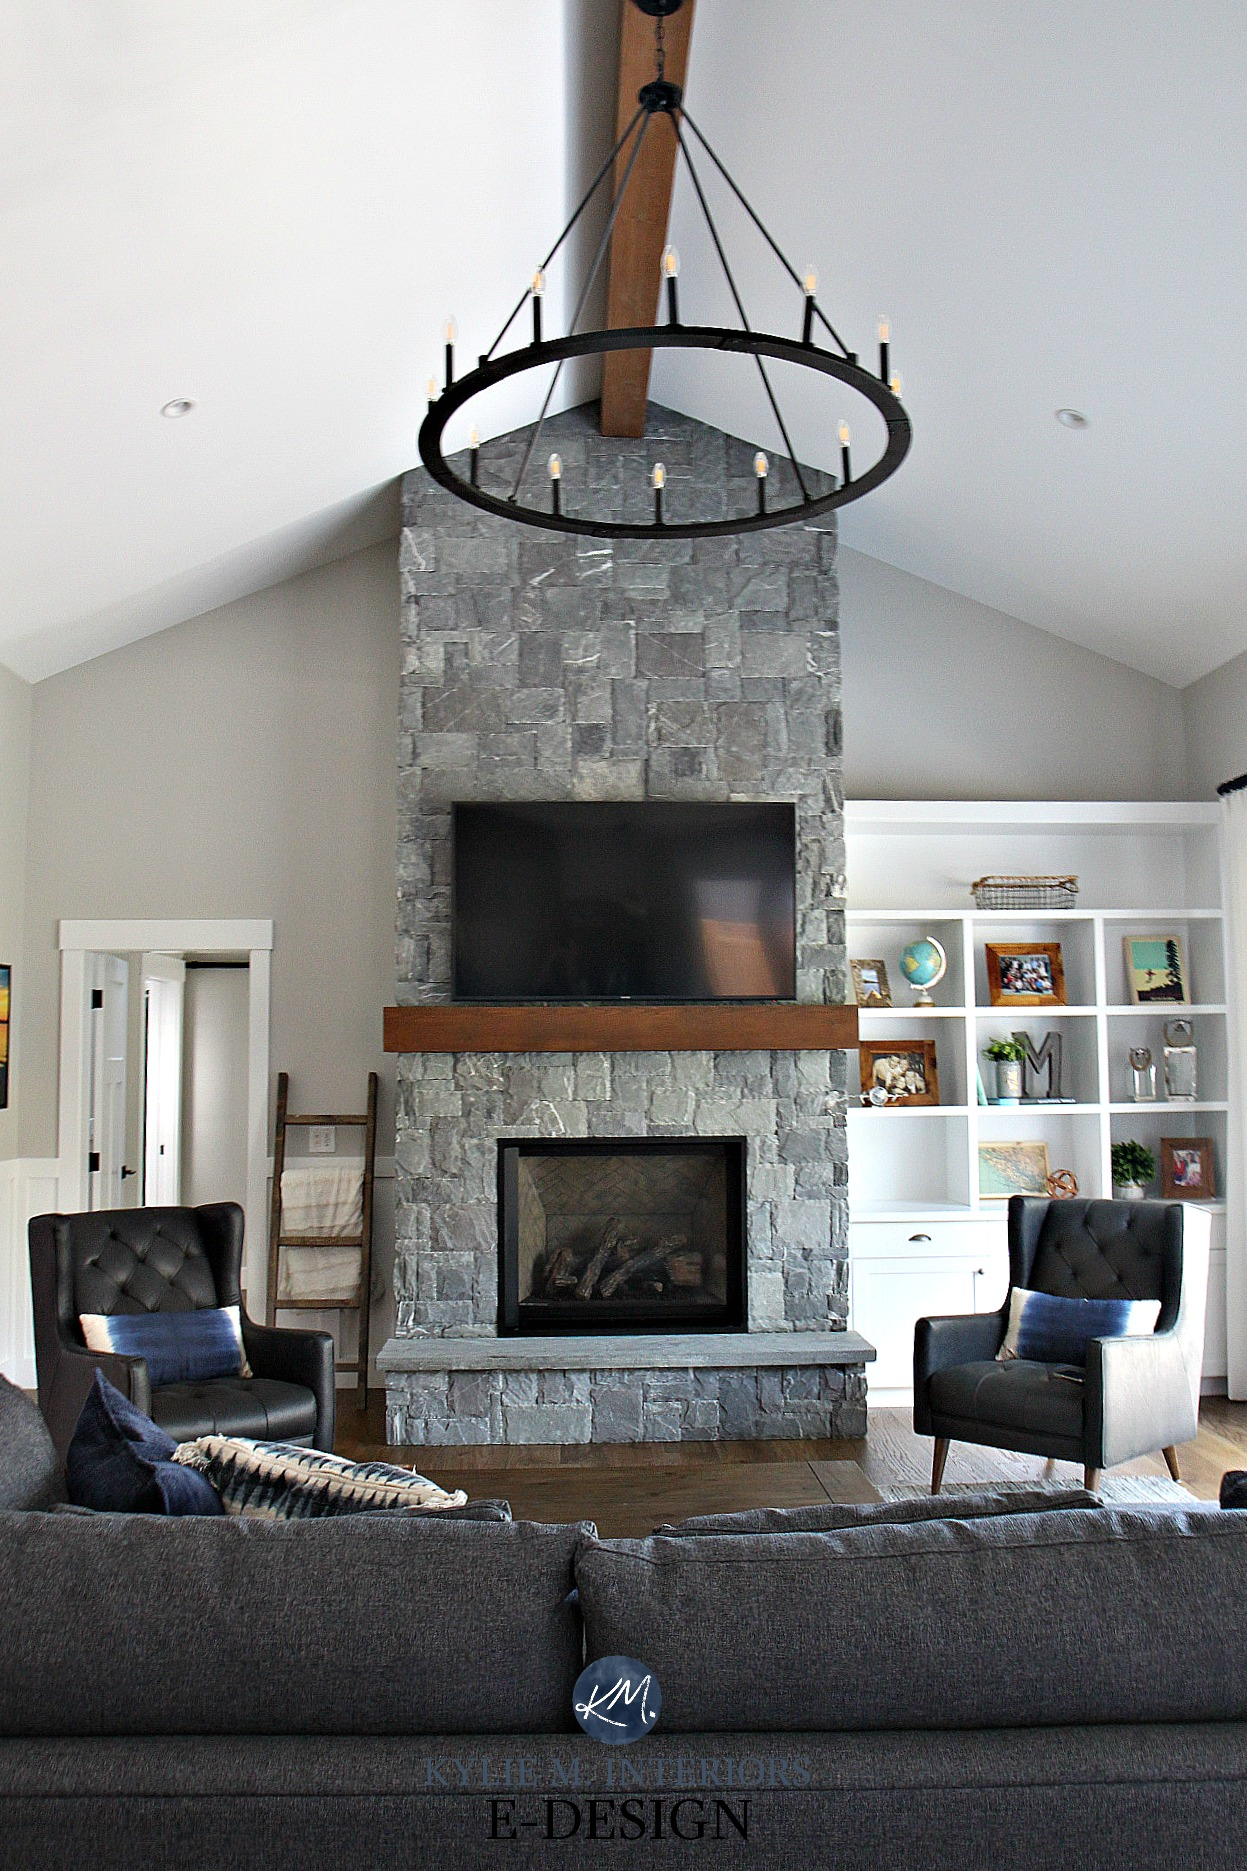 living room design with a stone fireplace and built-in shelves